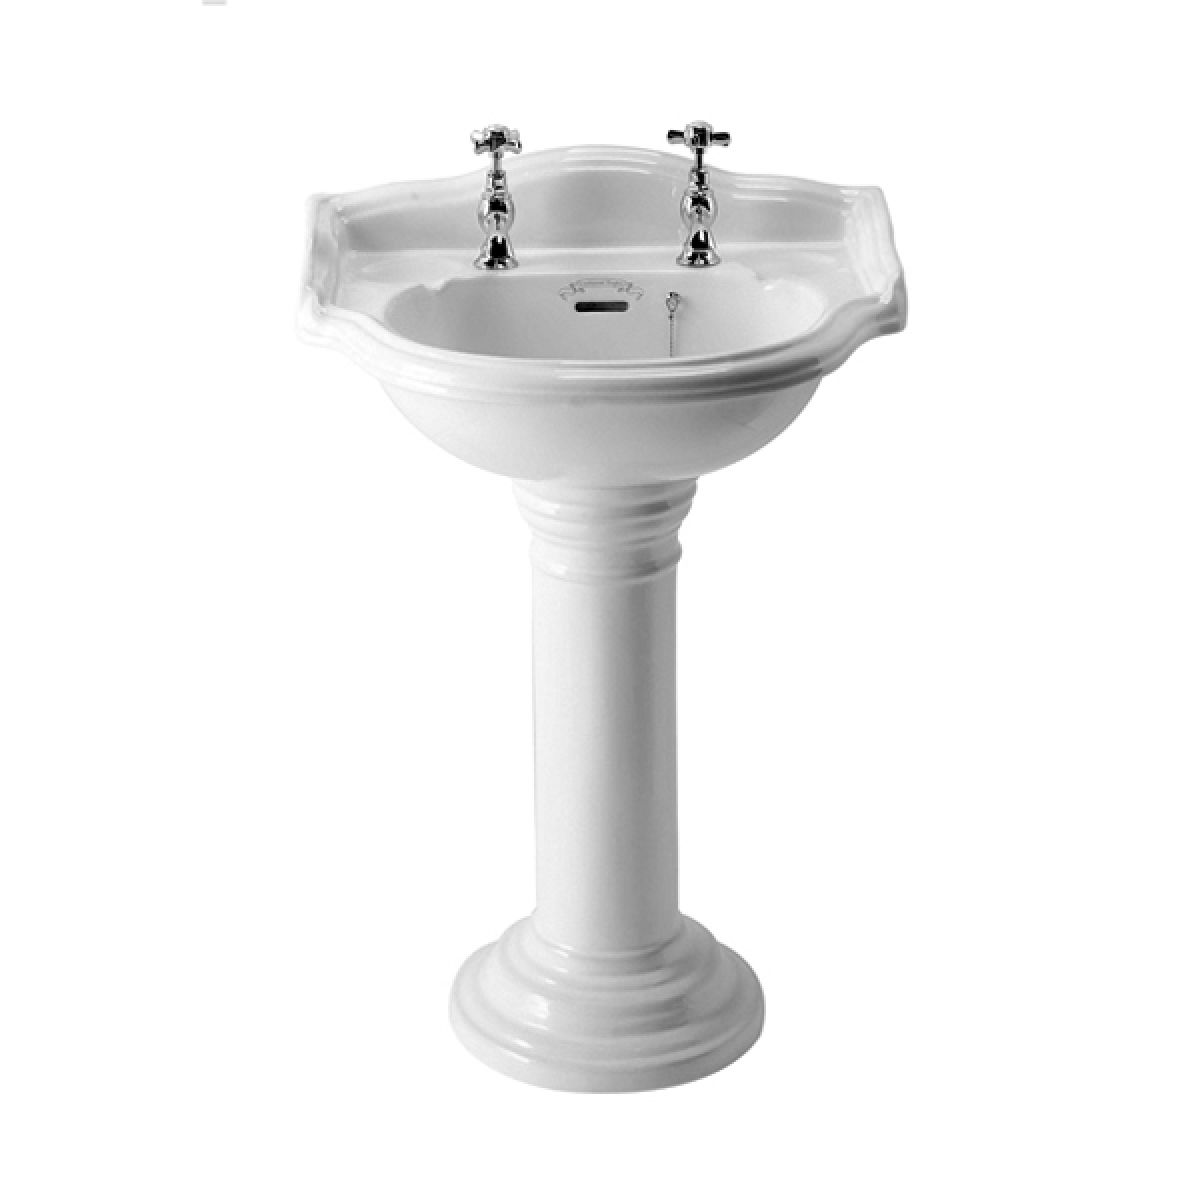 Small Pedestal Basin : ... basin full pedestal home bathrooms basins and sinks traditional basins